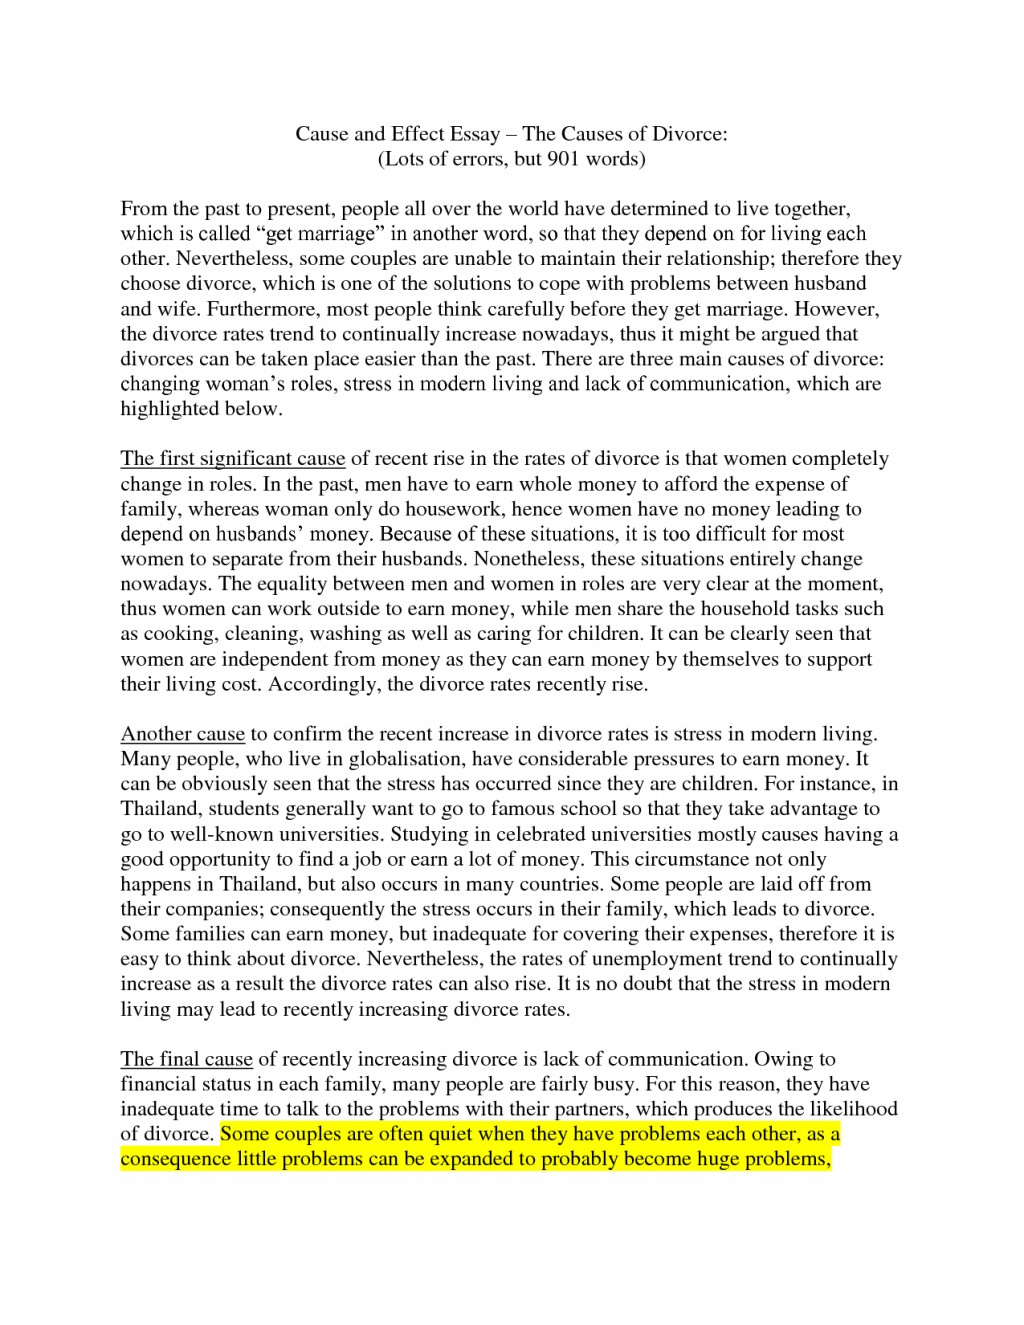 007 Essay Example Brilliant Ideas Of Caused Effect Write Ethics Fabulous The Causes Effects Smoking Sample Impressive Cause And Questions On Sleep Deprivation Bullying Large